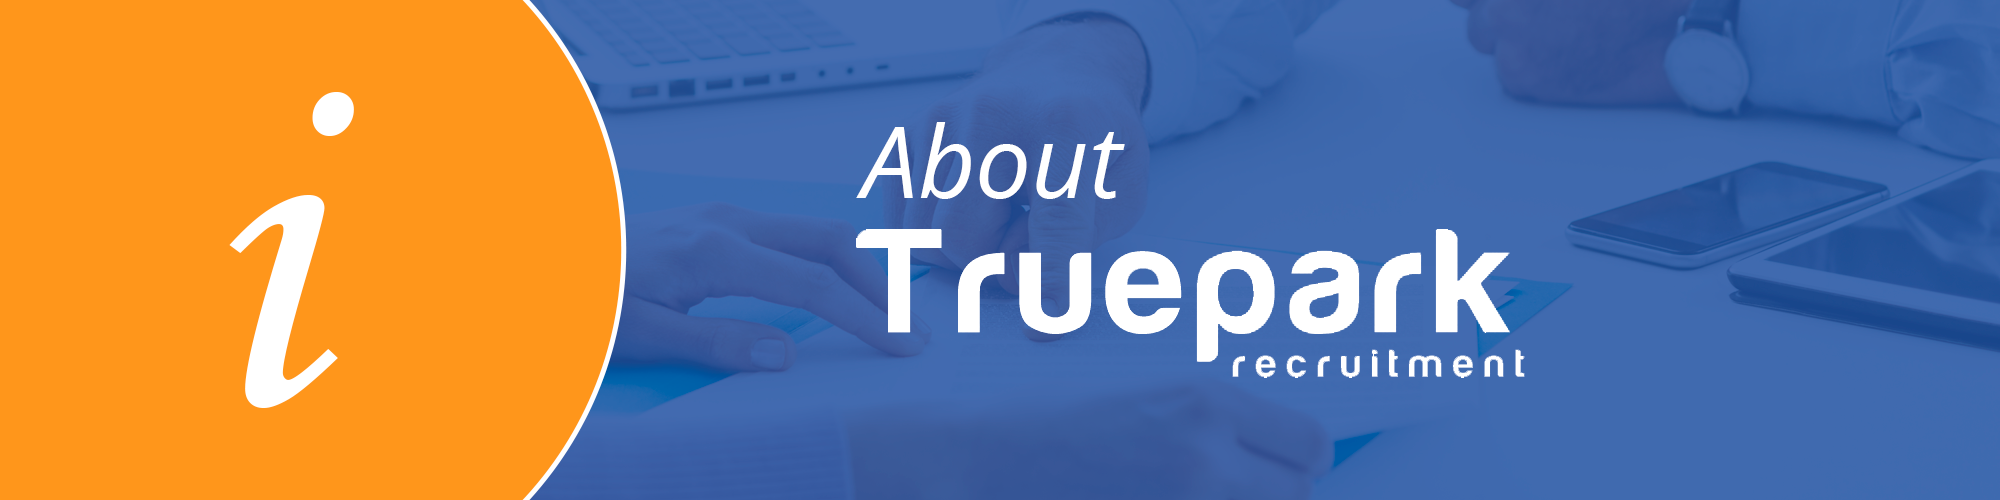 About Truepark Recruitment